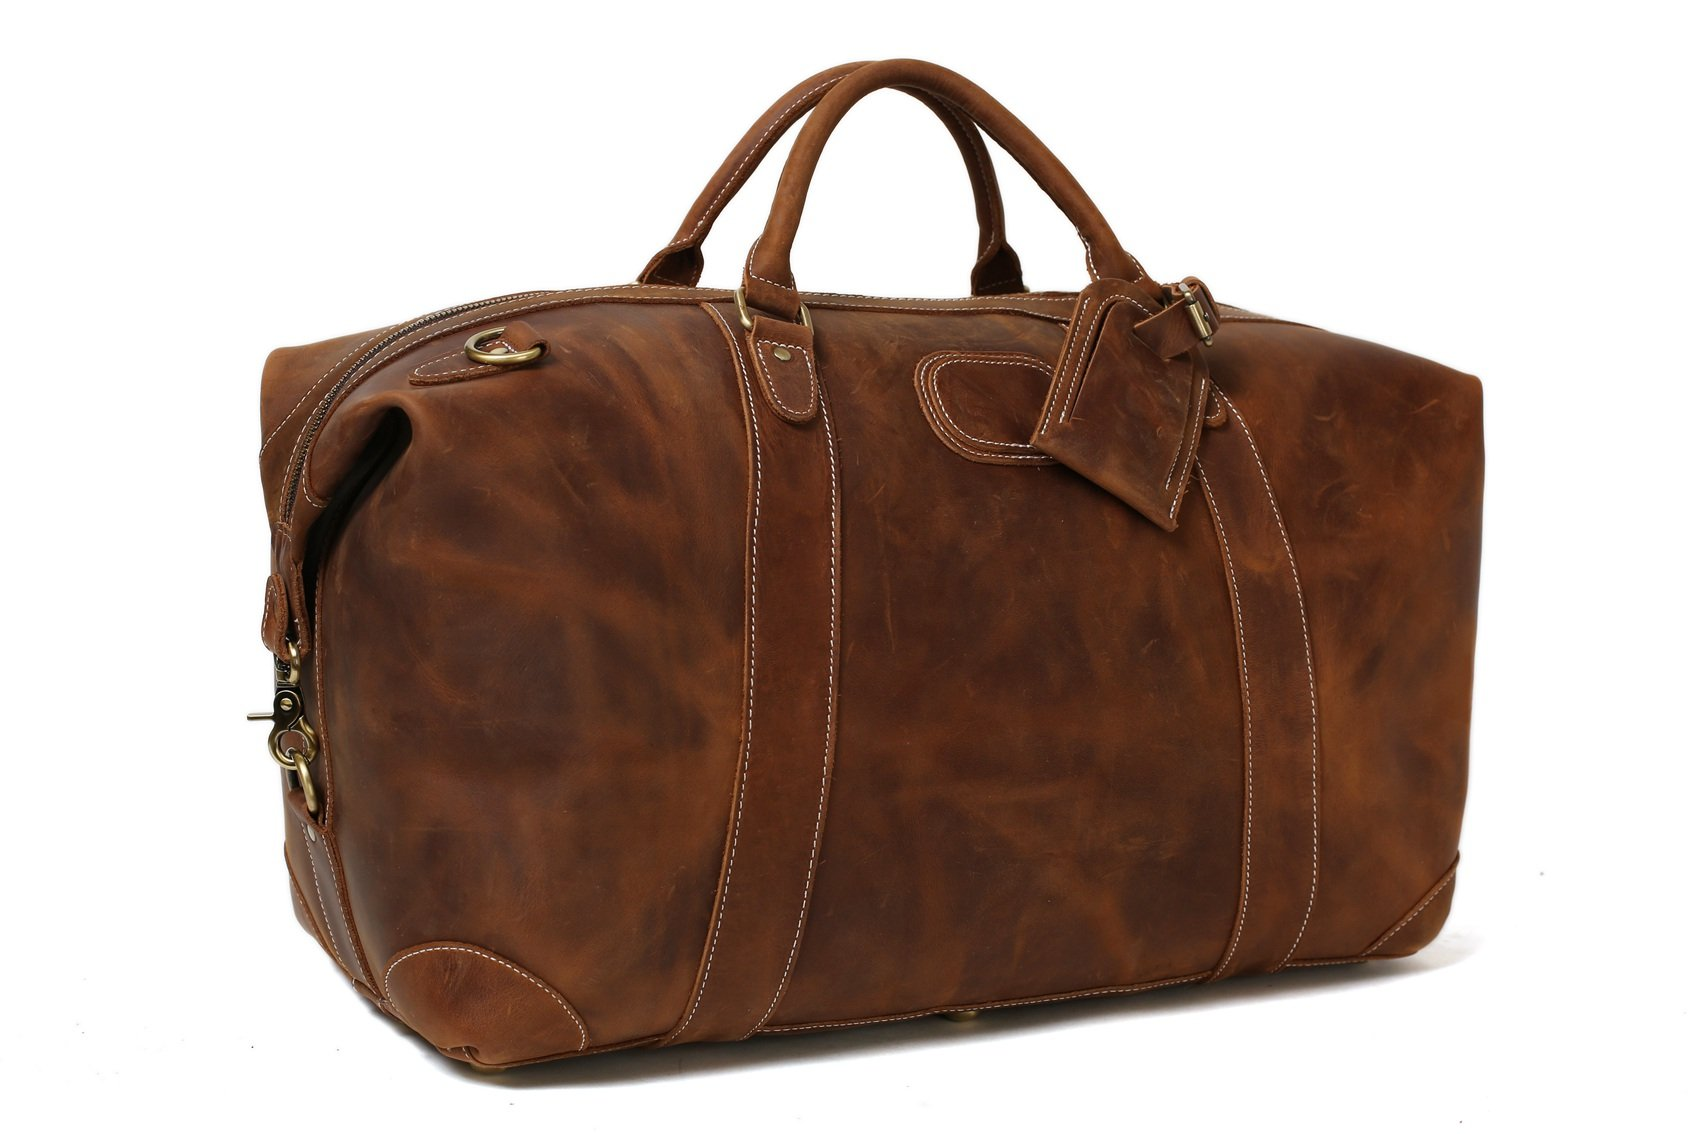 ROCKCOW Vintage Look Men's Leather Weekender Duffel Bag Luggage Holdall